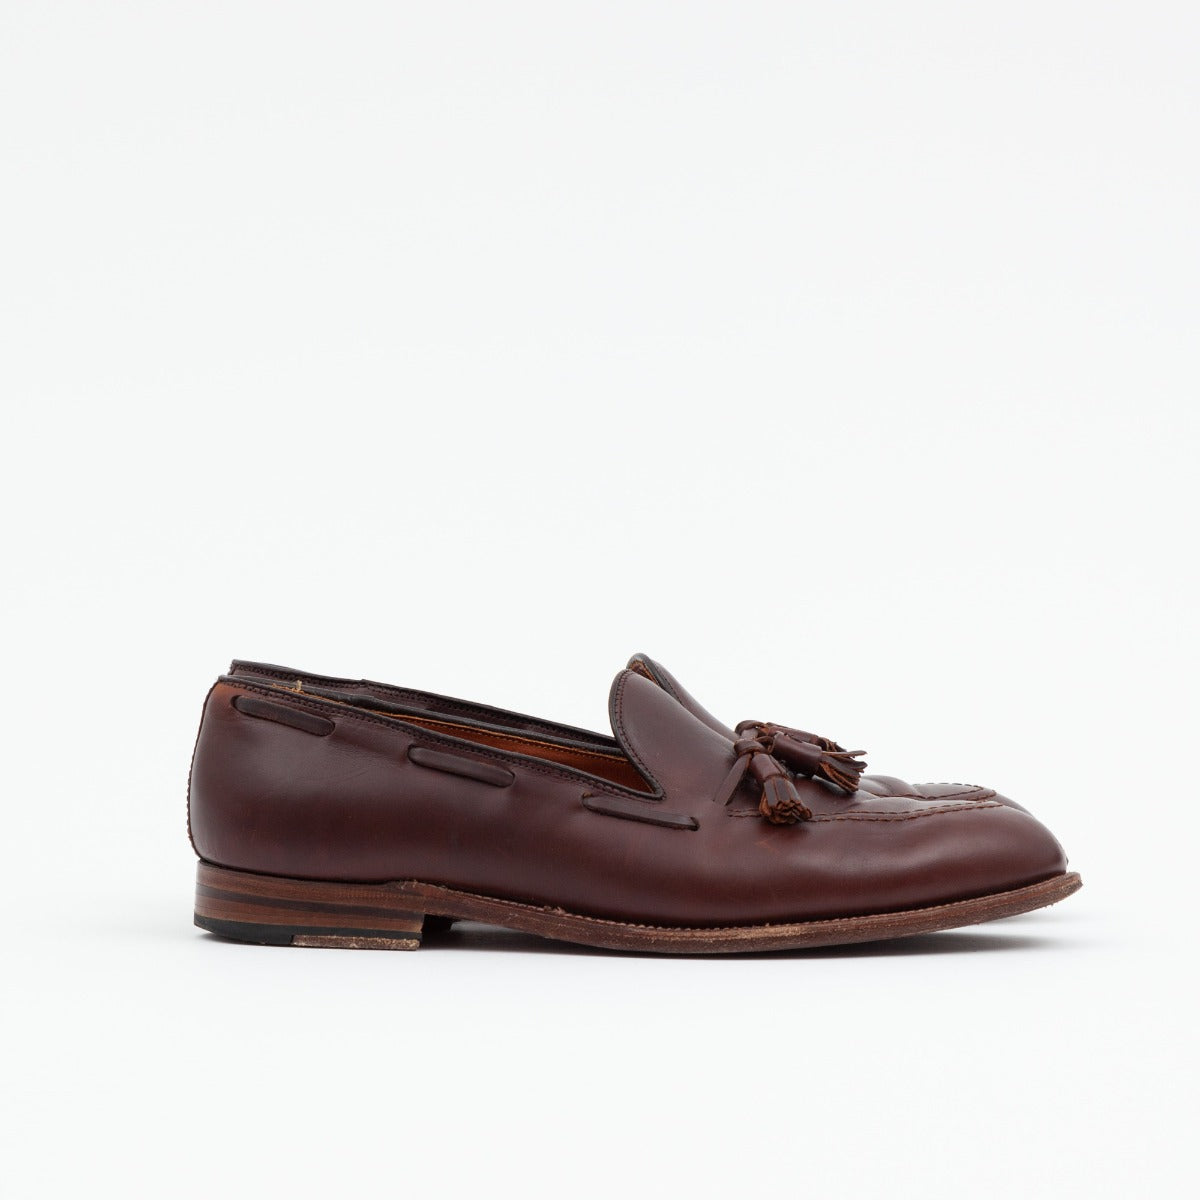 Tassel Moccasin - Brown Chromexcel